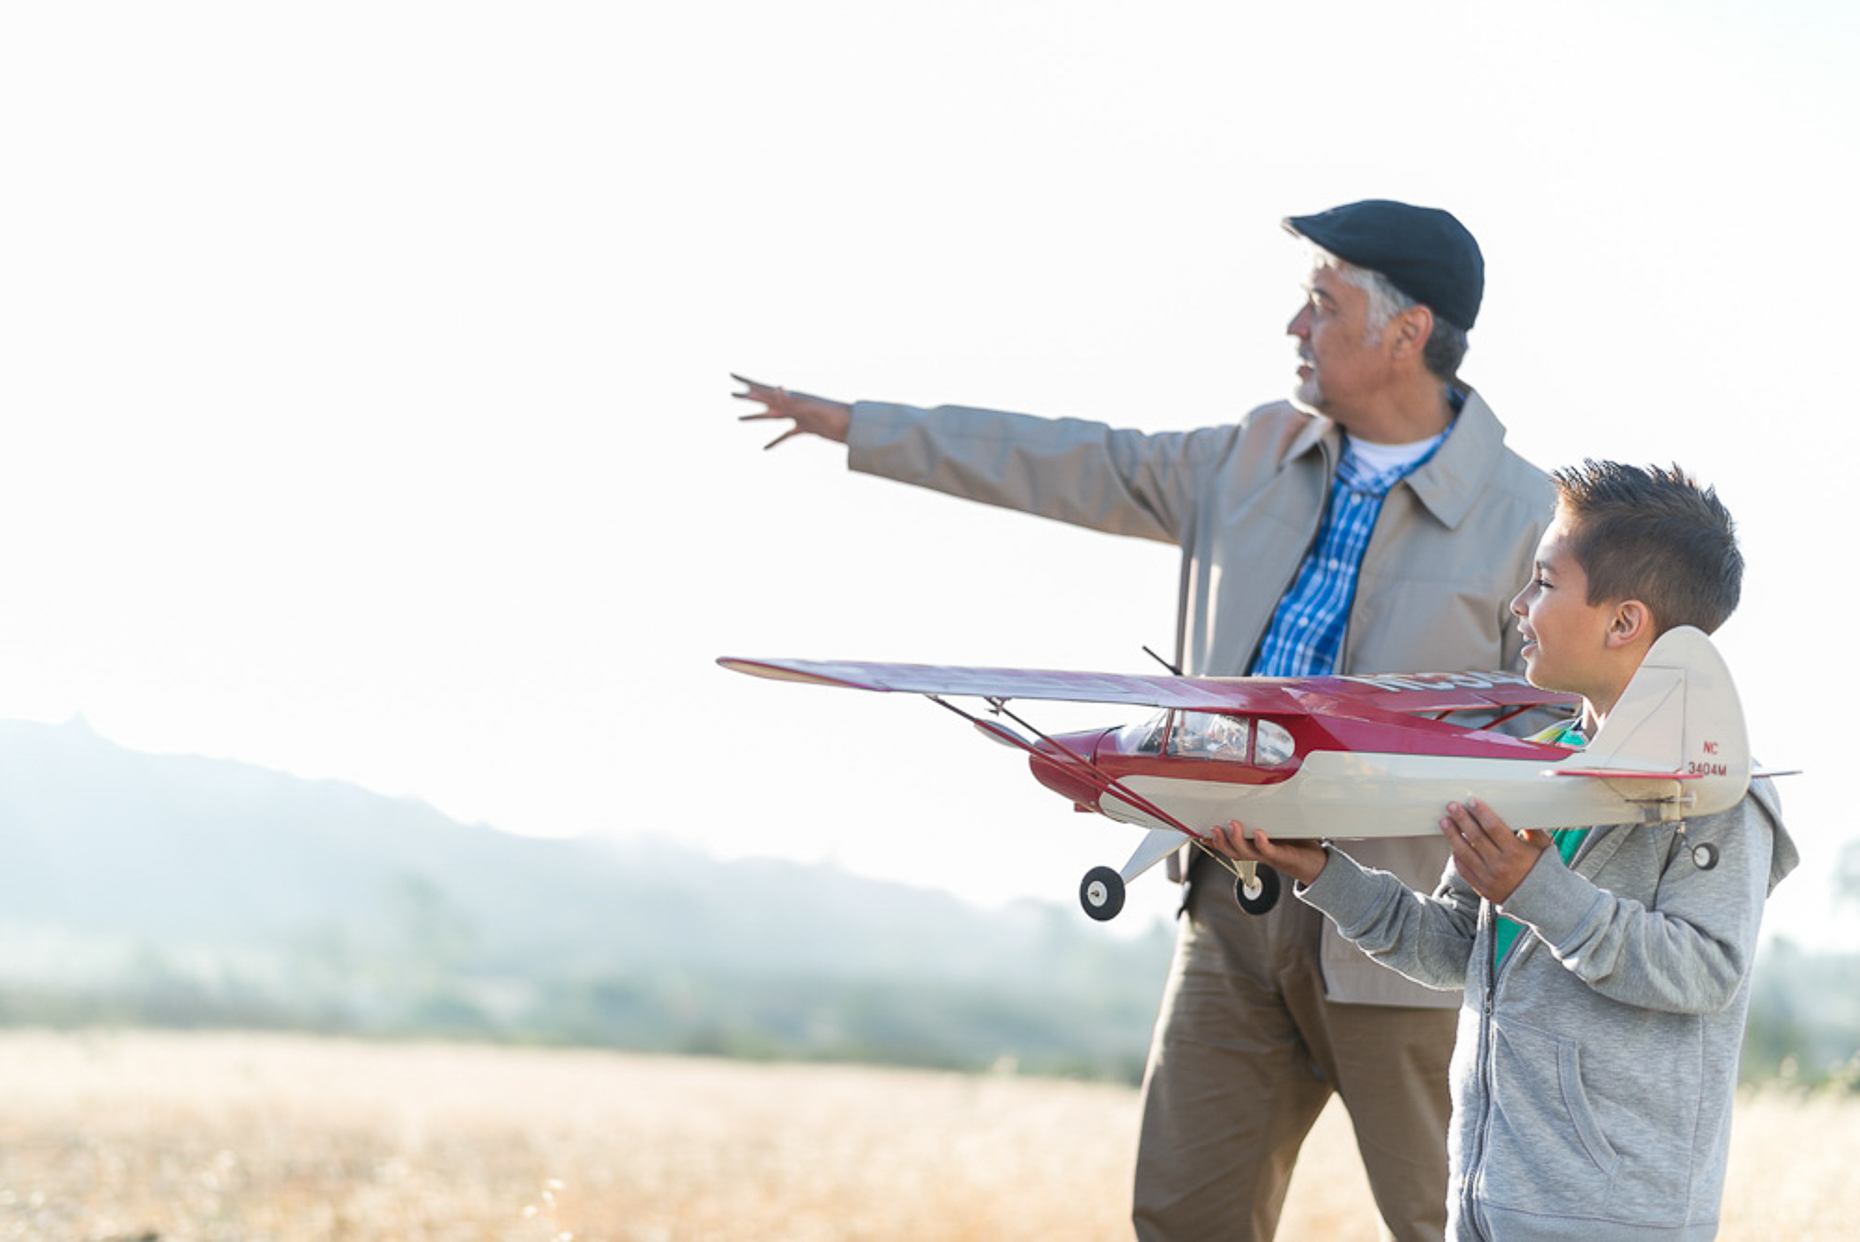 Kevin Steele - An elder man helps his grandson fly a model airplane